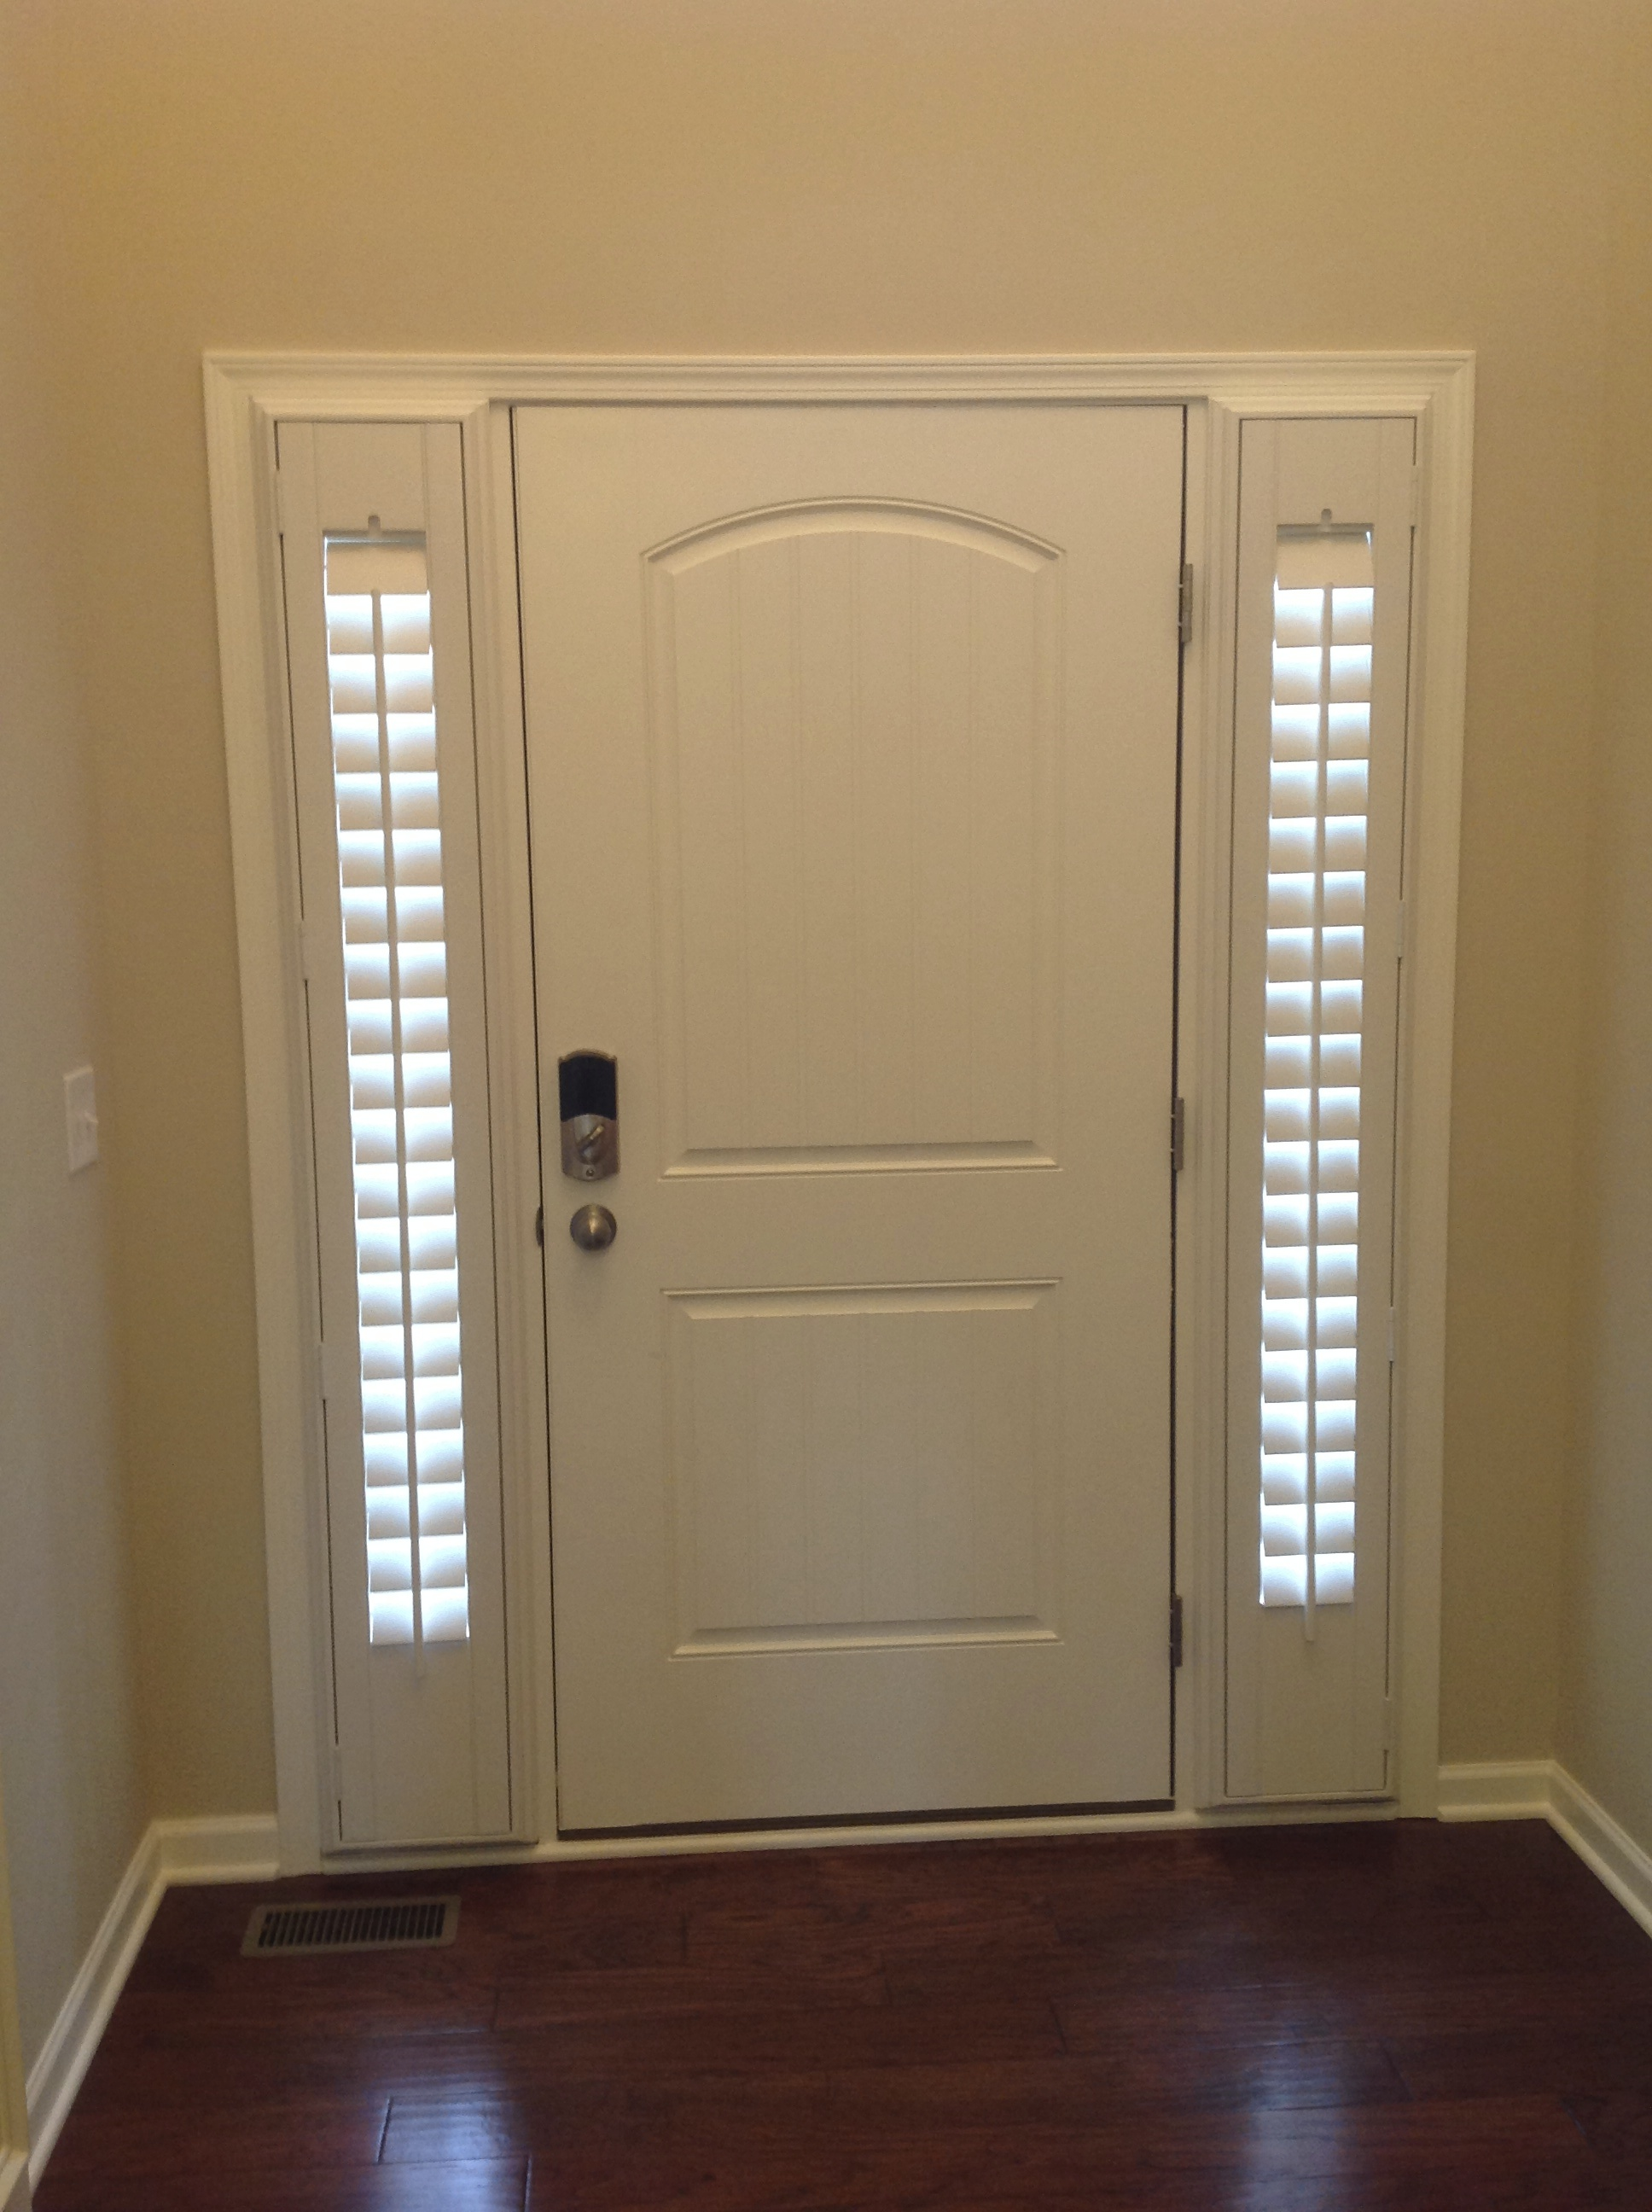 26 Good And Useful Ideas For Front Door Blinds  Interior Design Inspirations